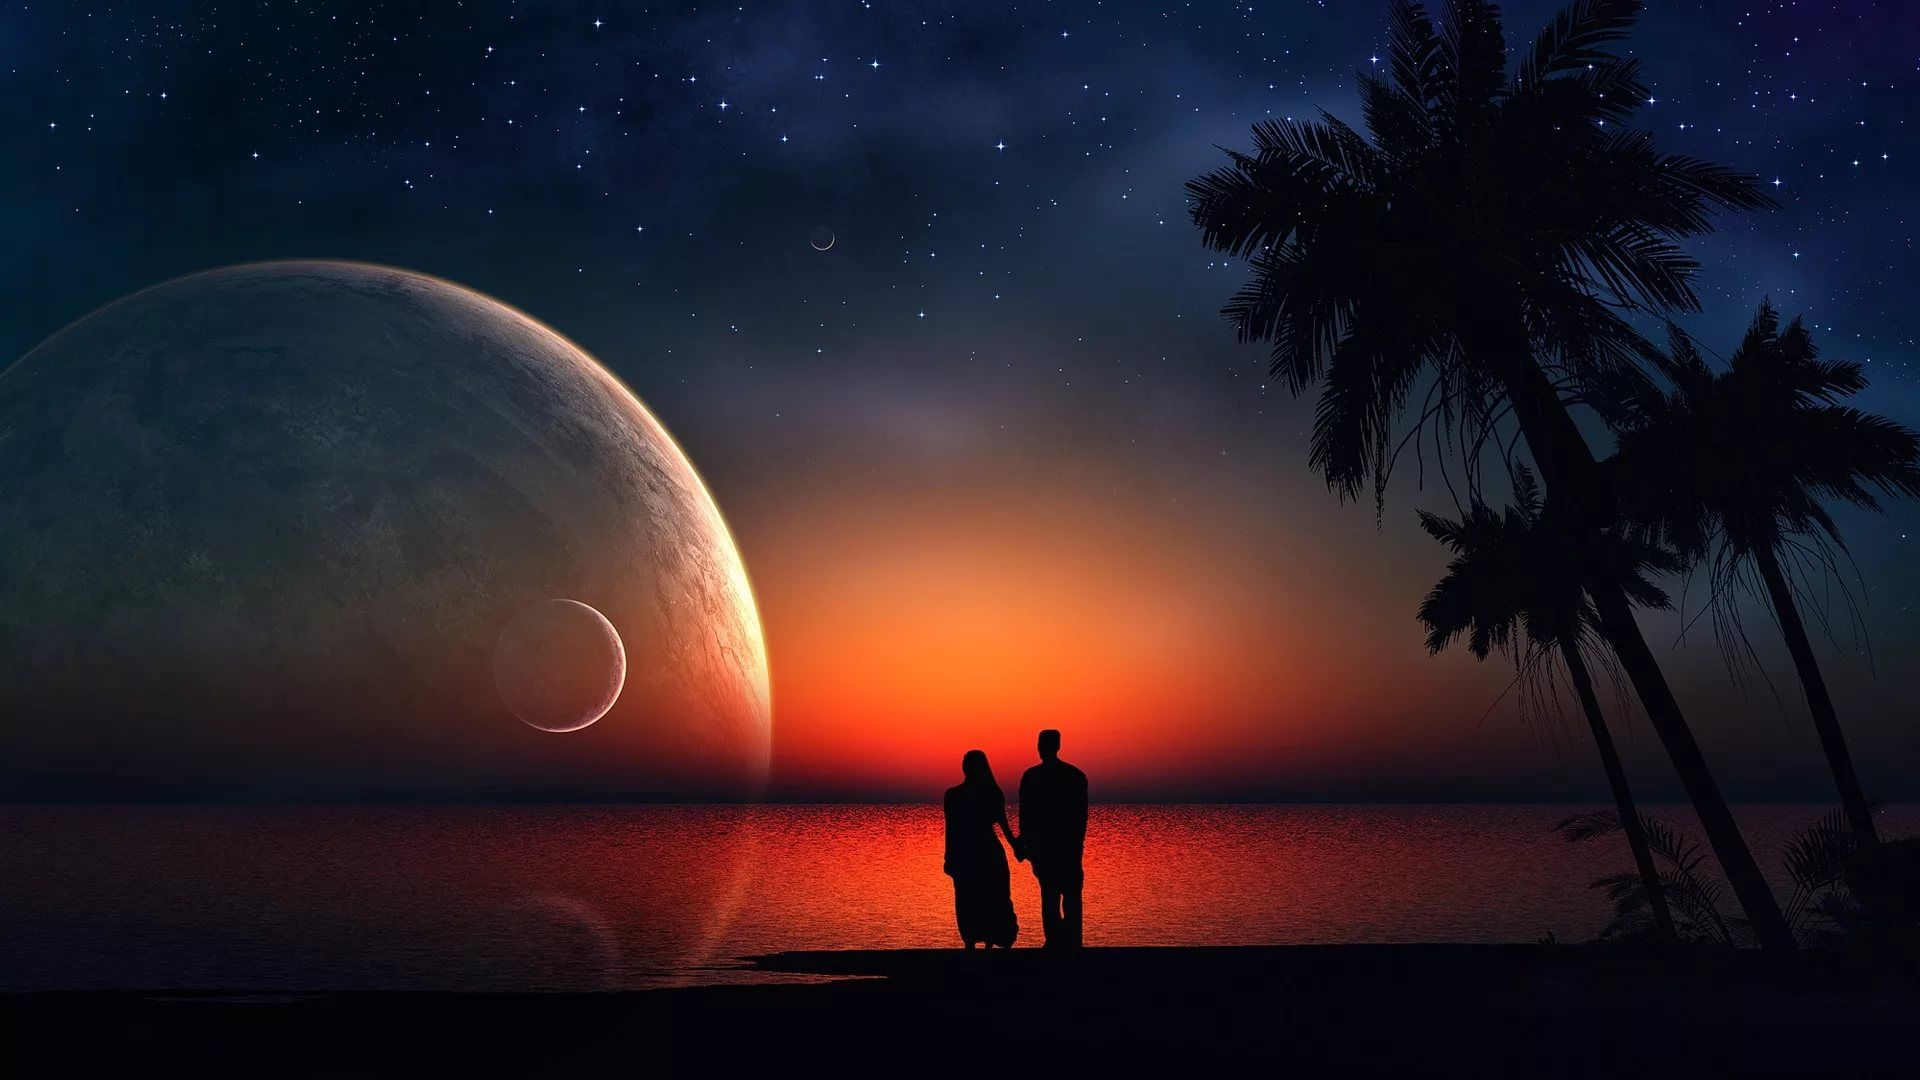 Good Night Love Couple Image hd